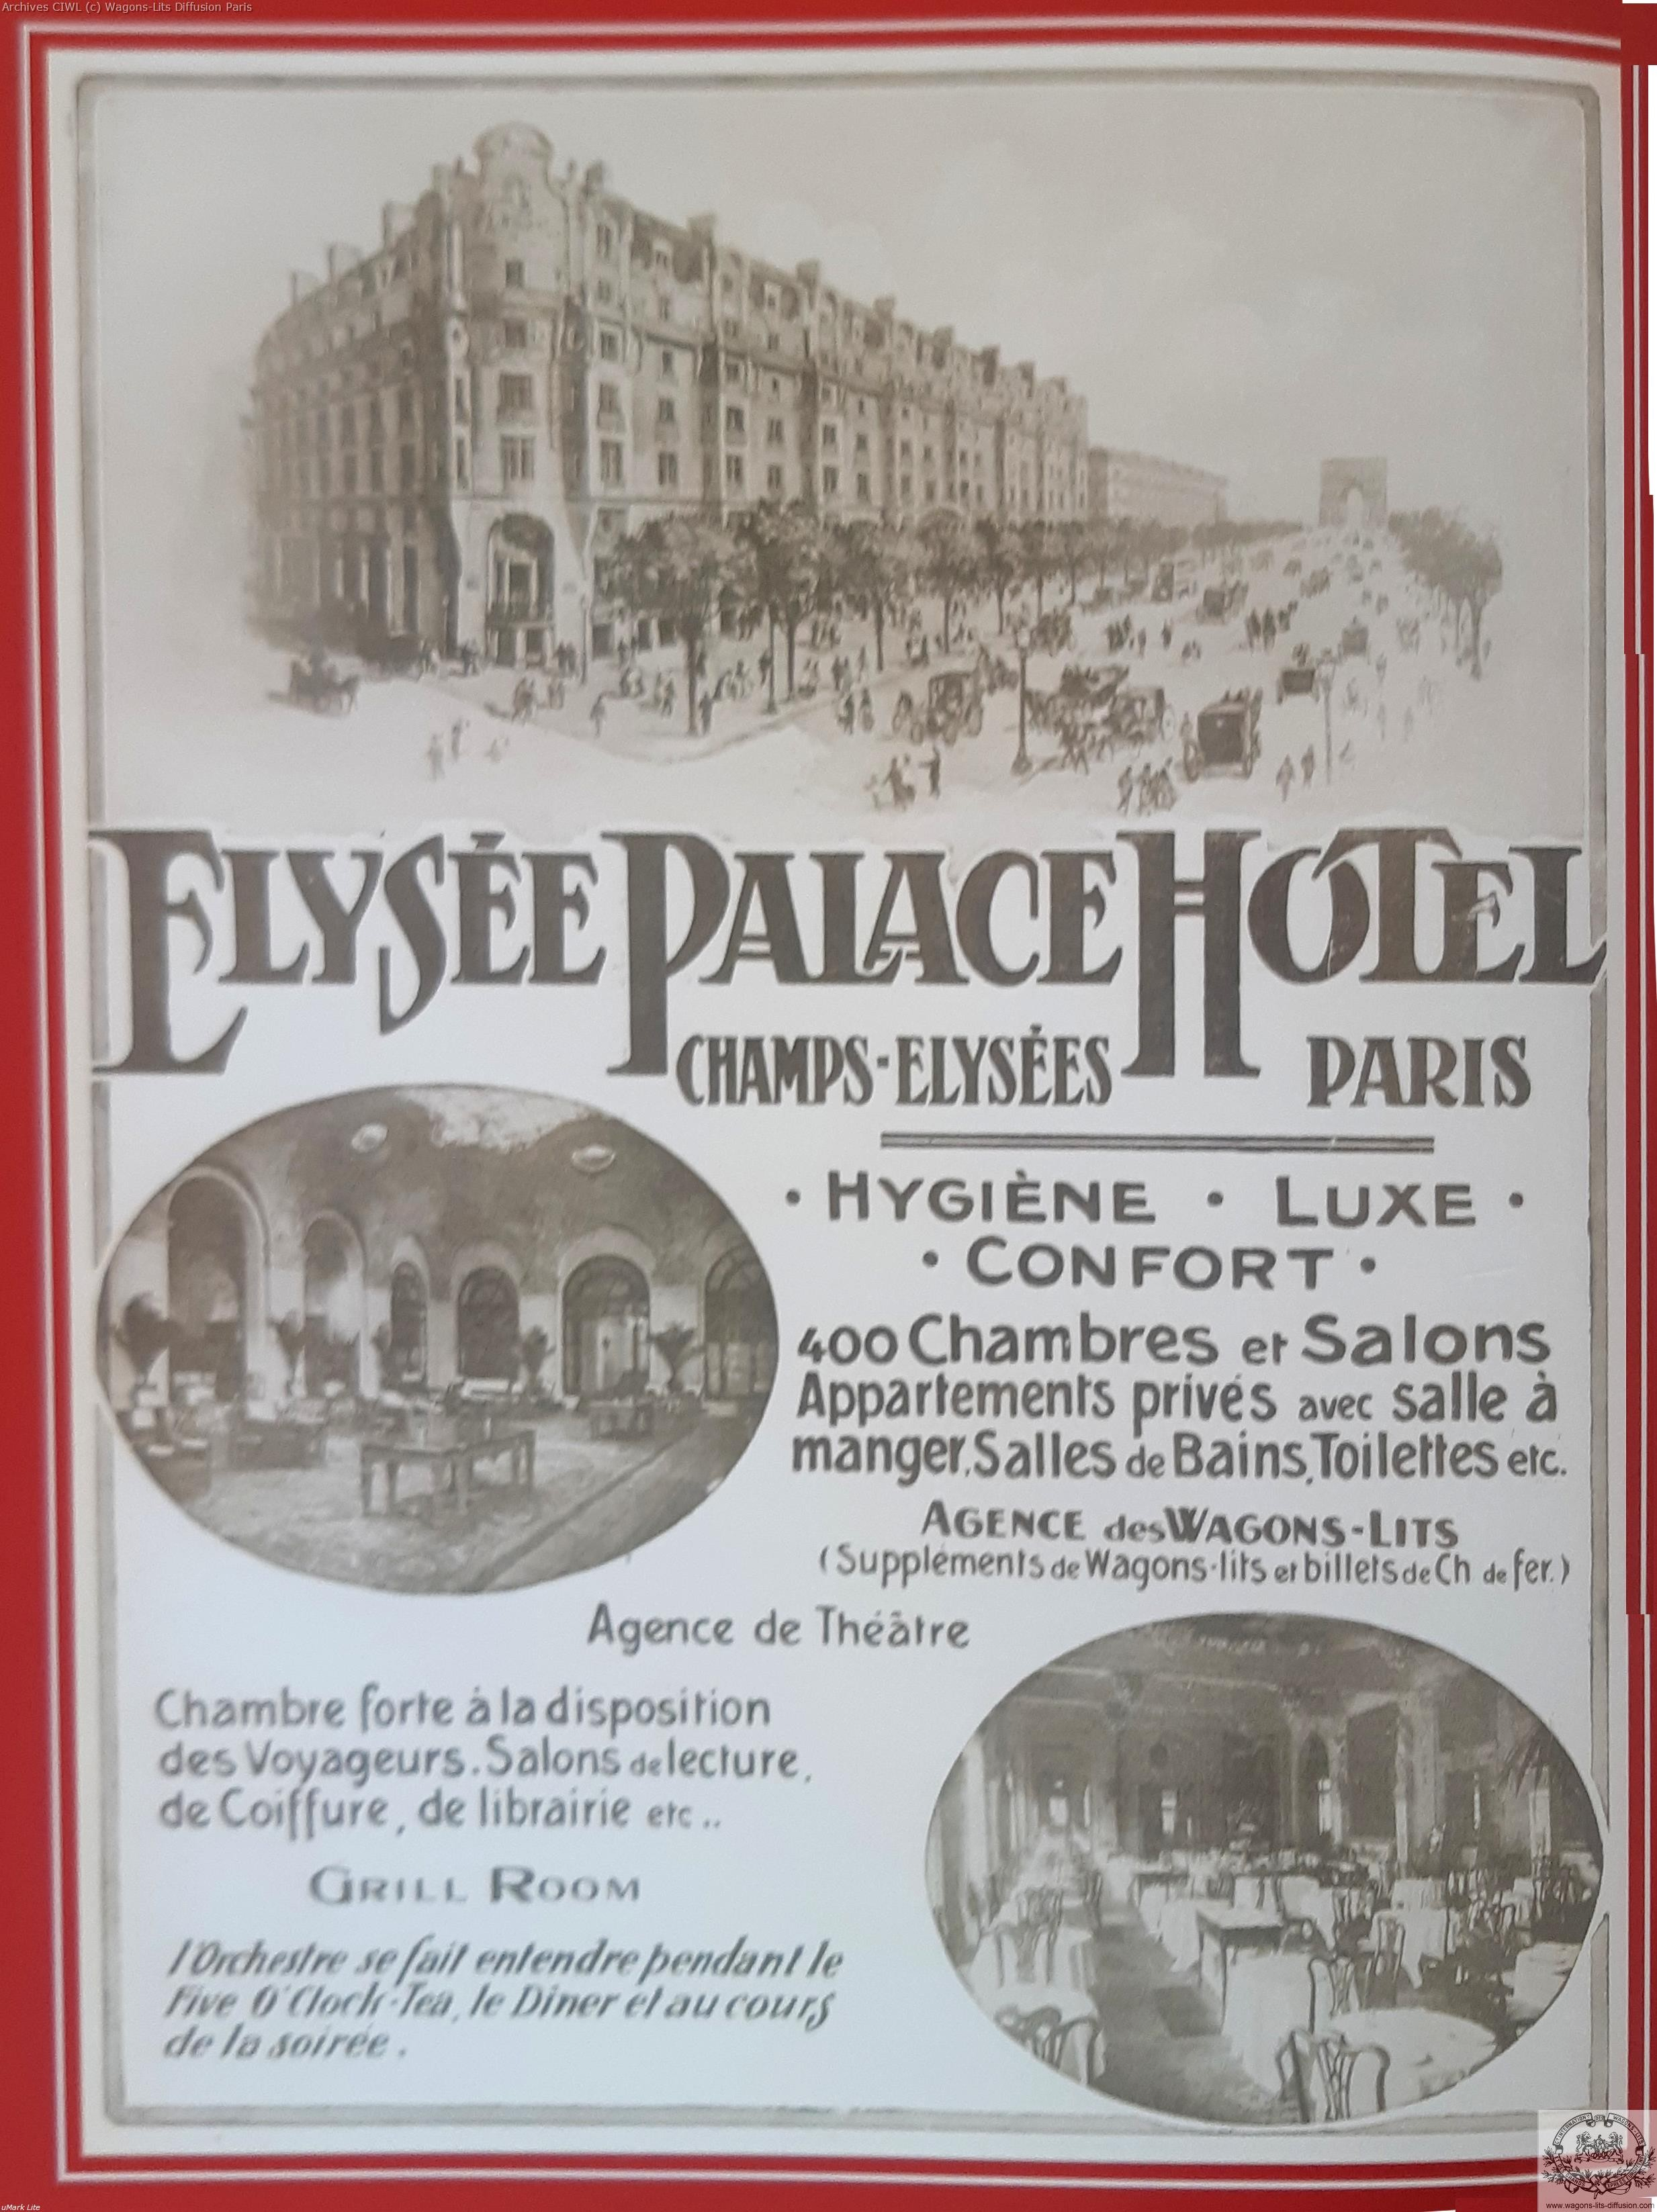 Wl pub elysees palace hotel paris 1900